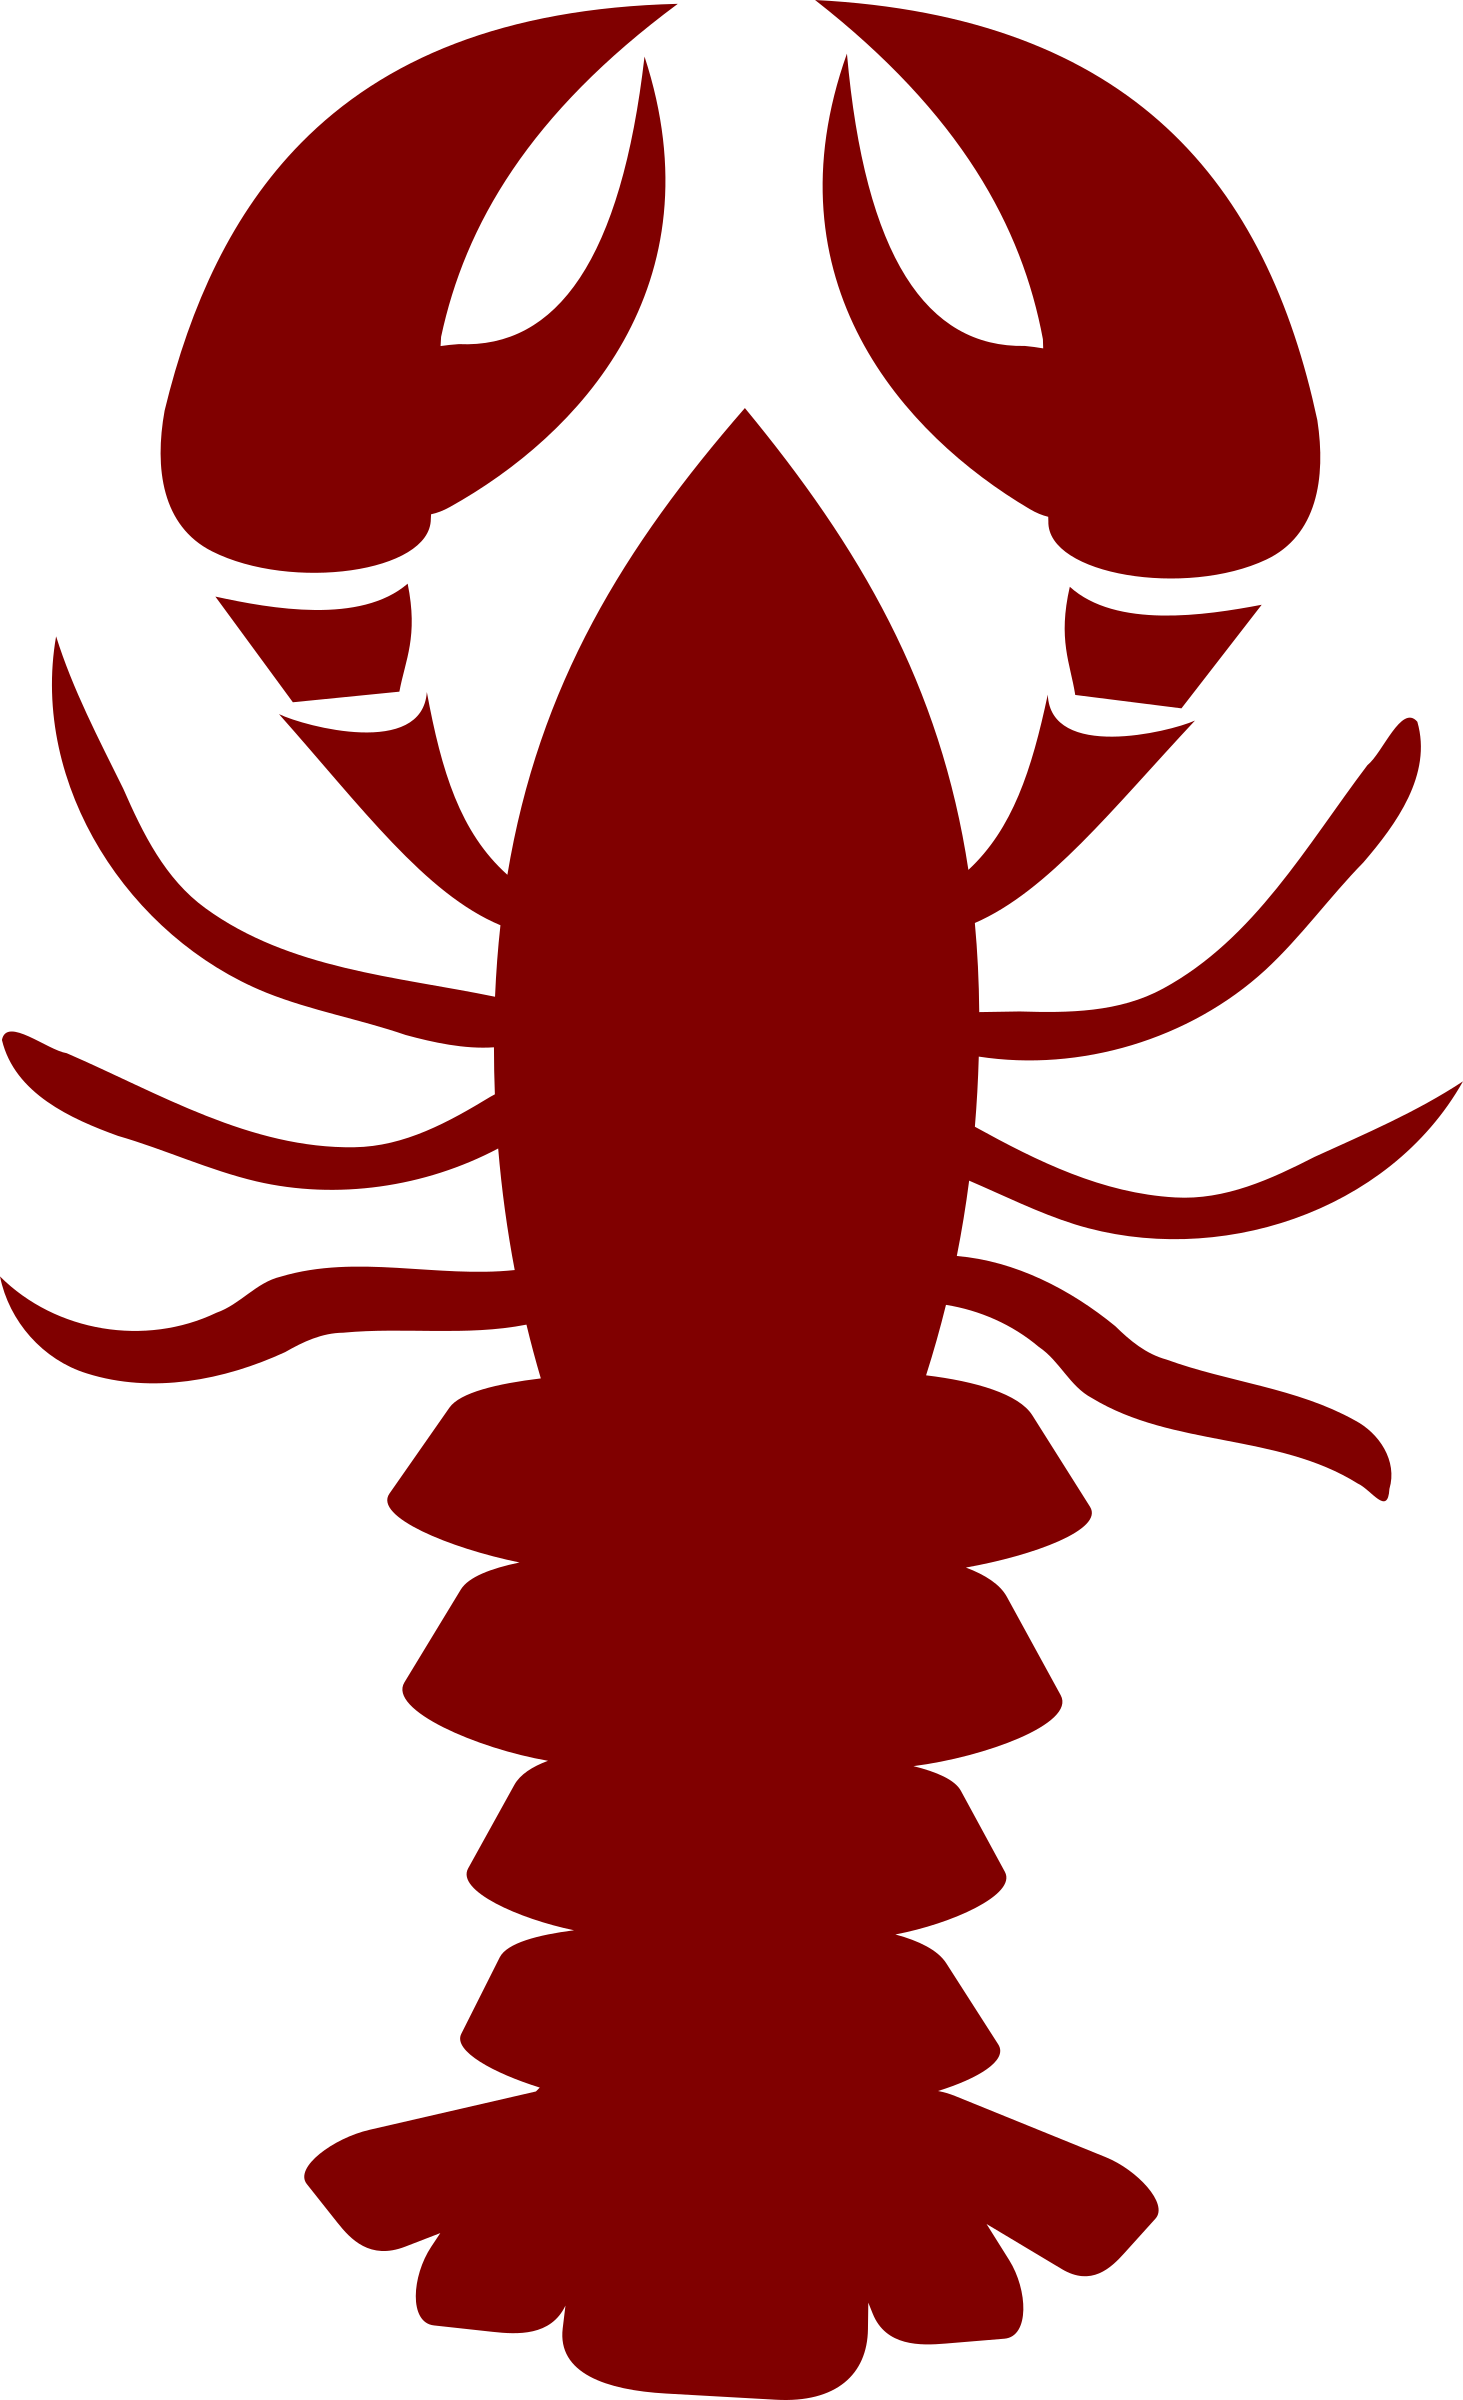 Lobster clip art or cartoons free clipart images